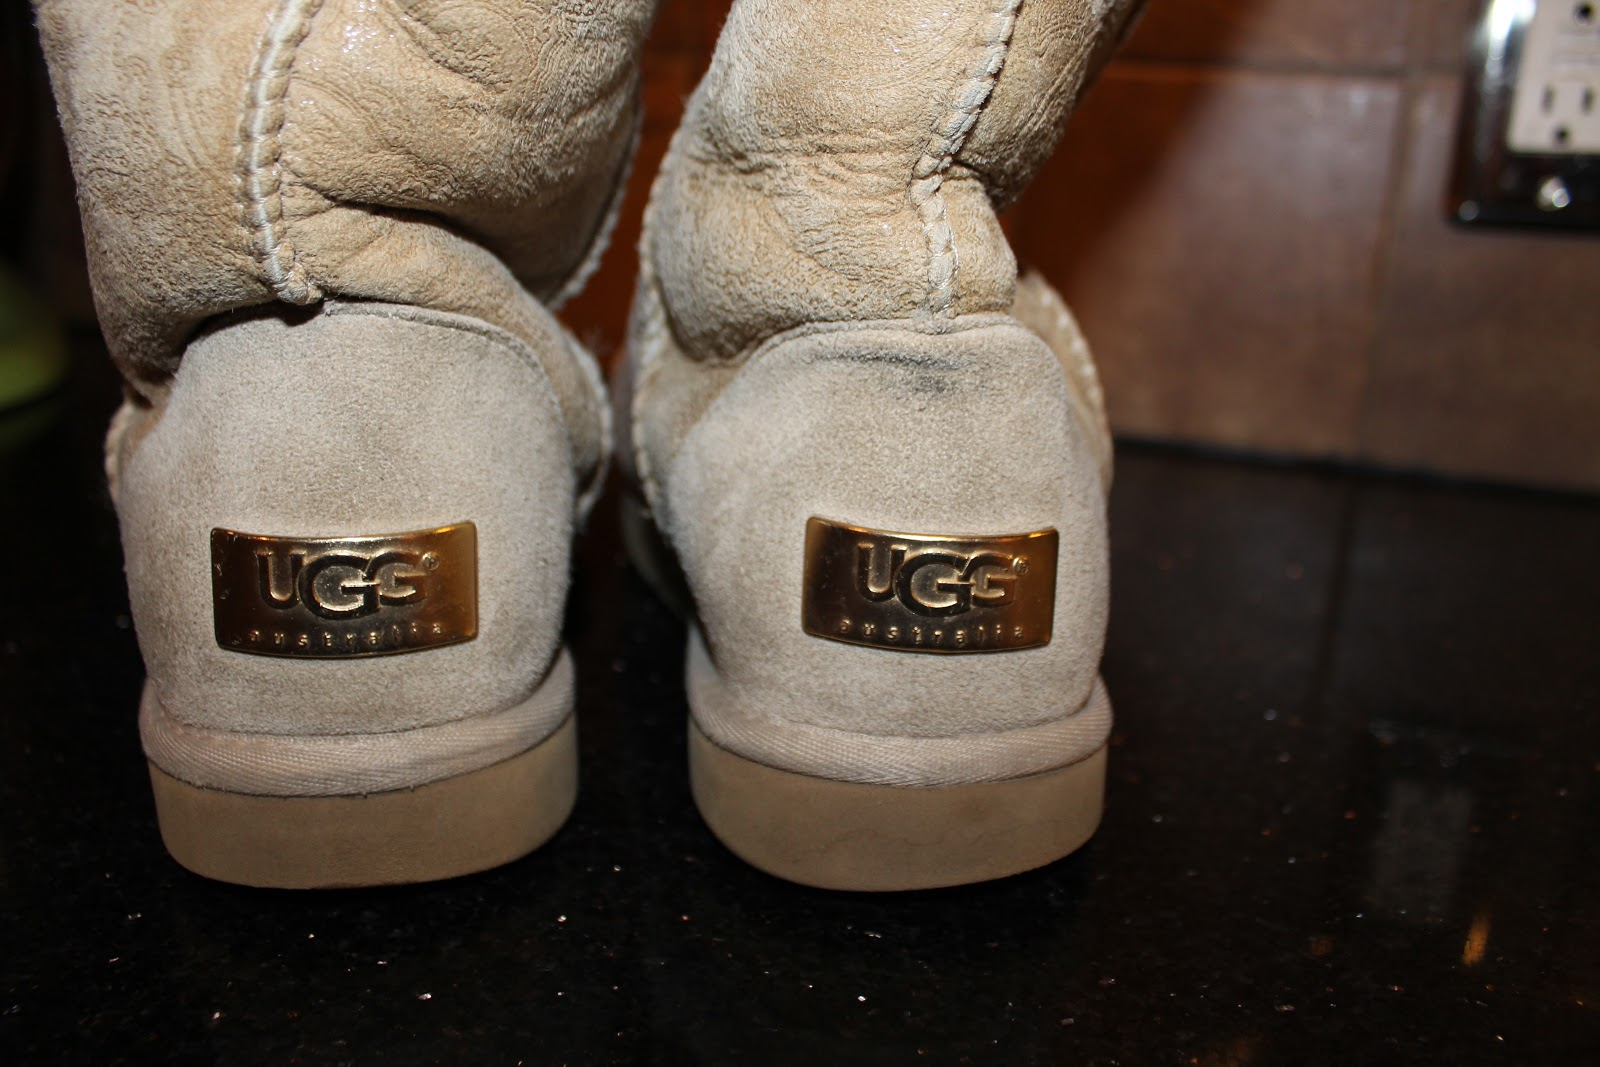 how to clean uggs at home without ruining them